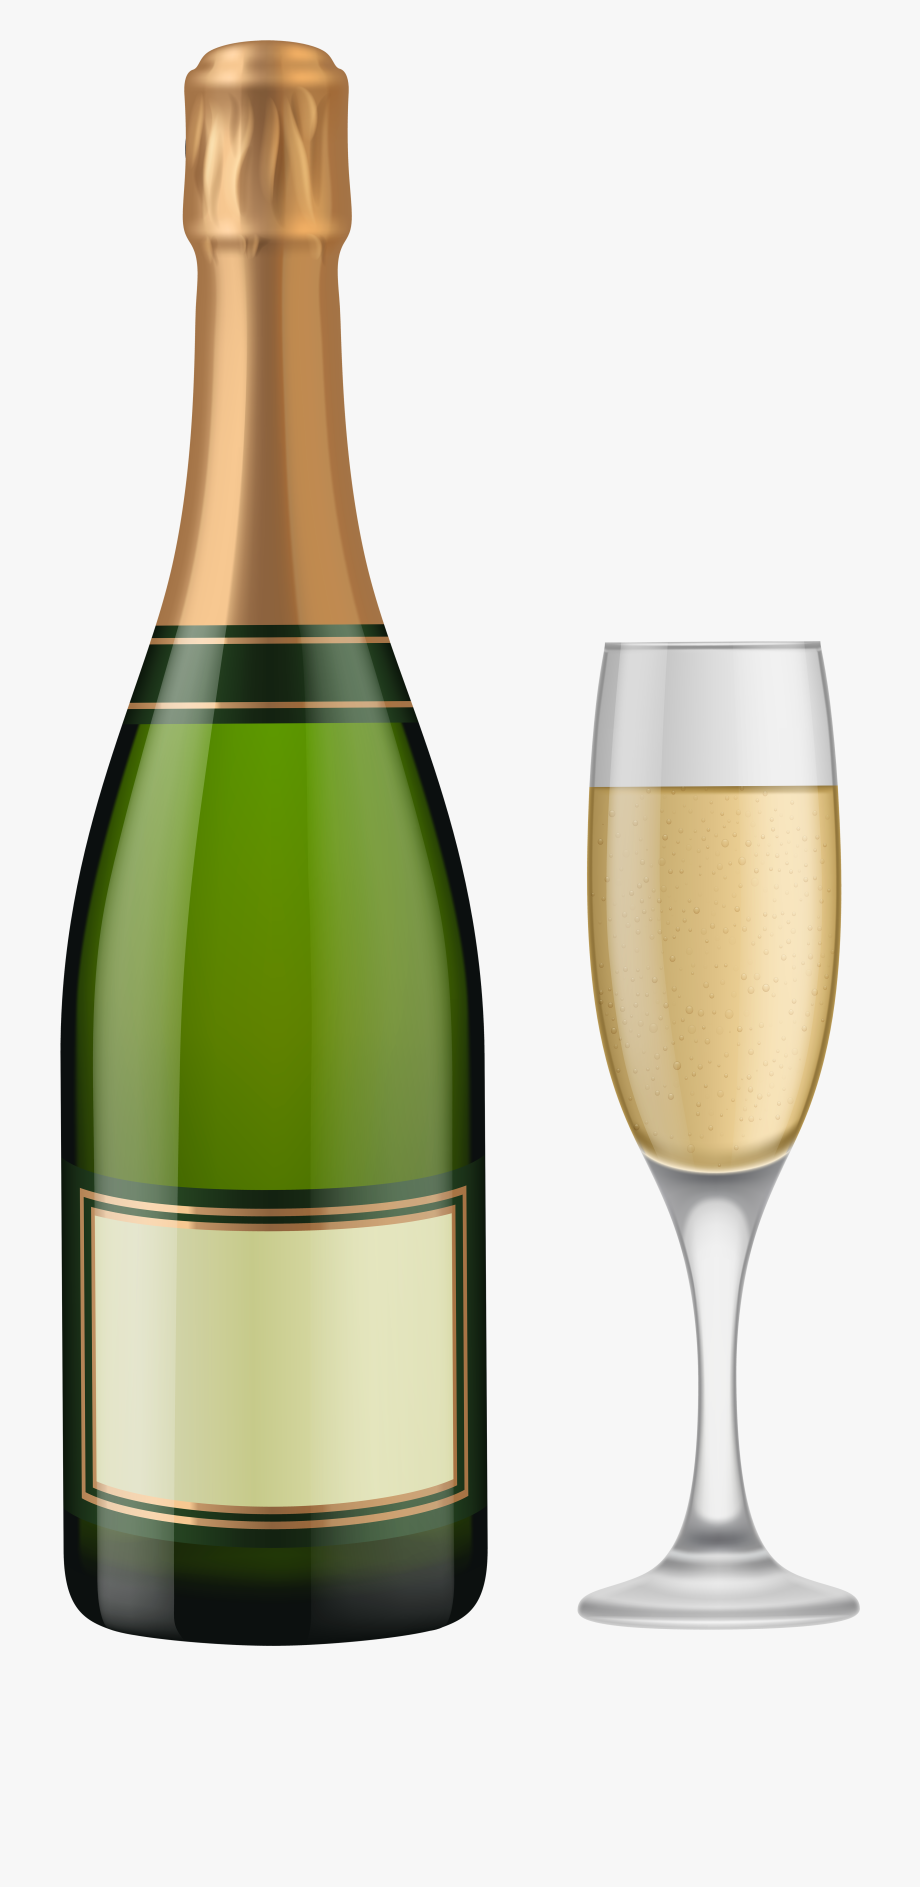 Bottle of champagne glass clipart black and white download Bottle Of Champagne Png - Clip Art Champagne Bottle #289538 - Free ... black and white download